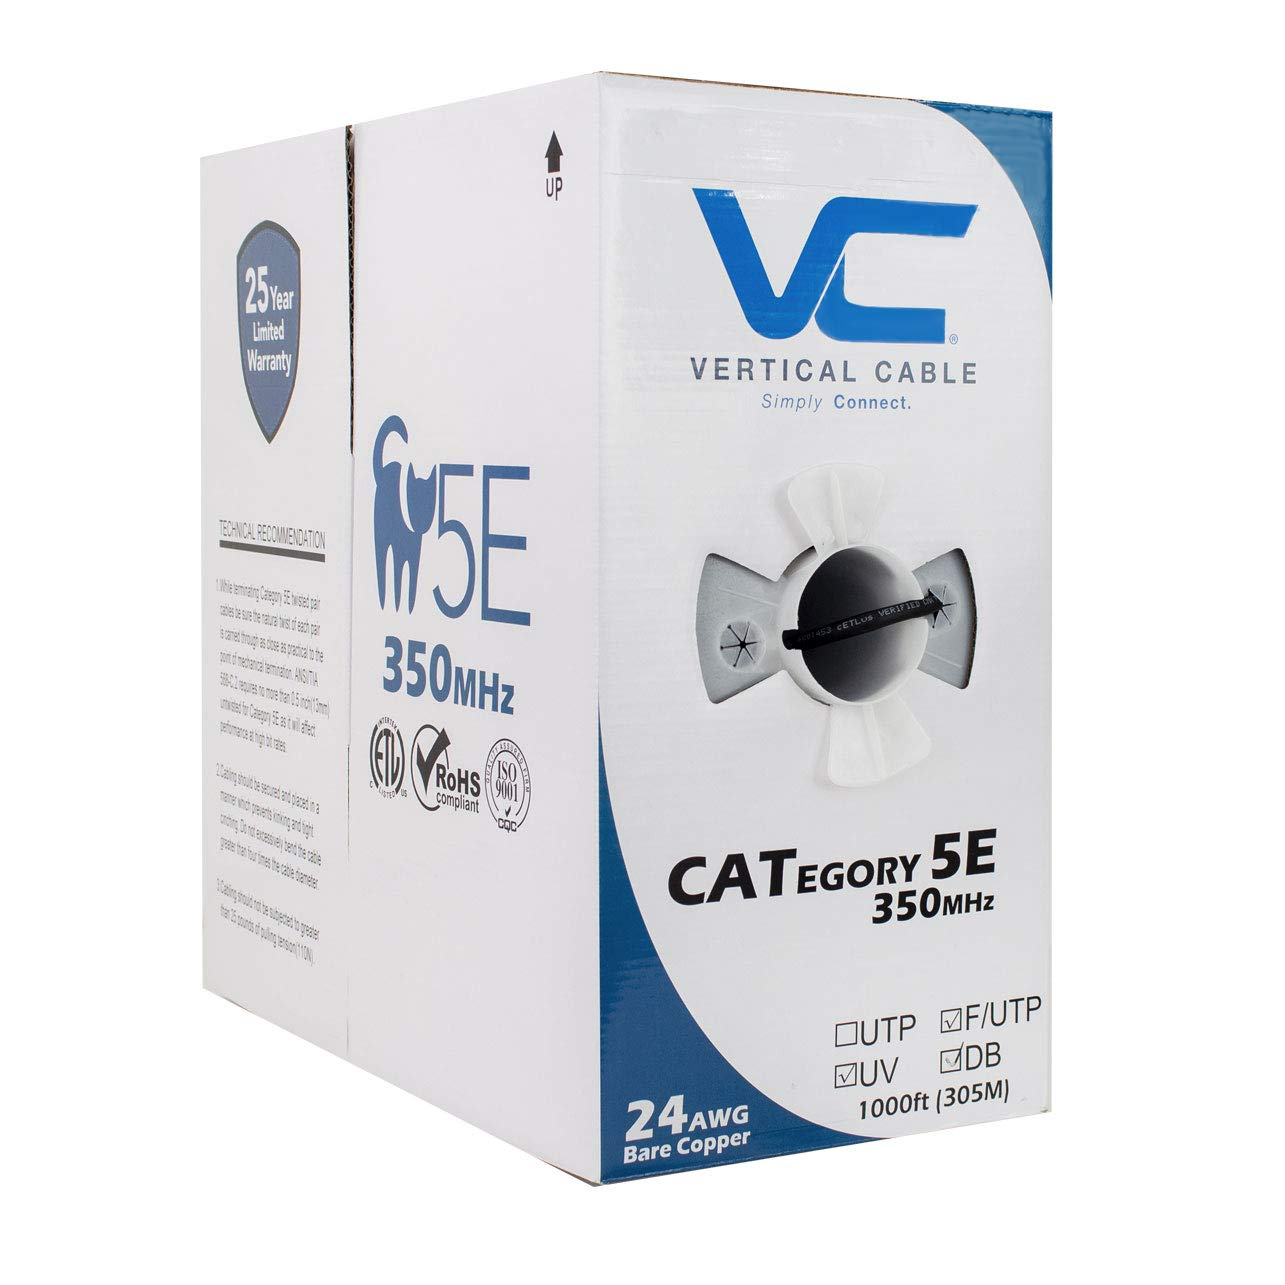 Vertical Cable CAT5E, Shielded Dual Jacket, Direct Burial, 1000ft, Black, Bulk Ethernet Cable by VC VERTICAL CABLE